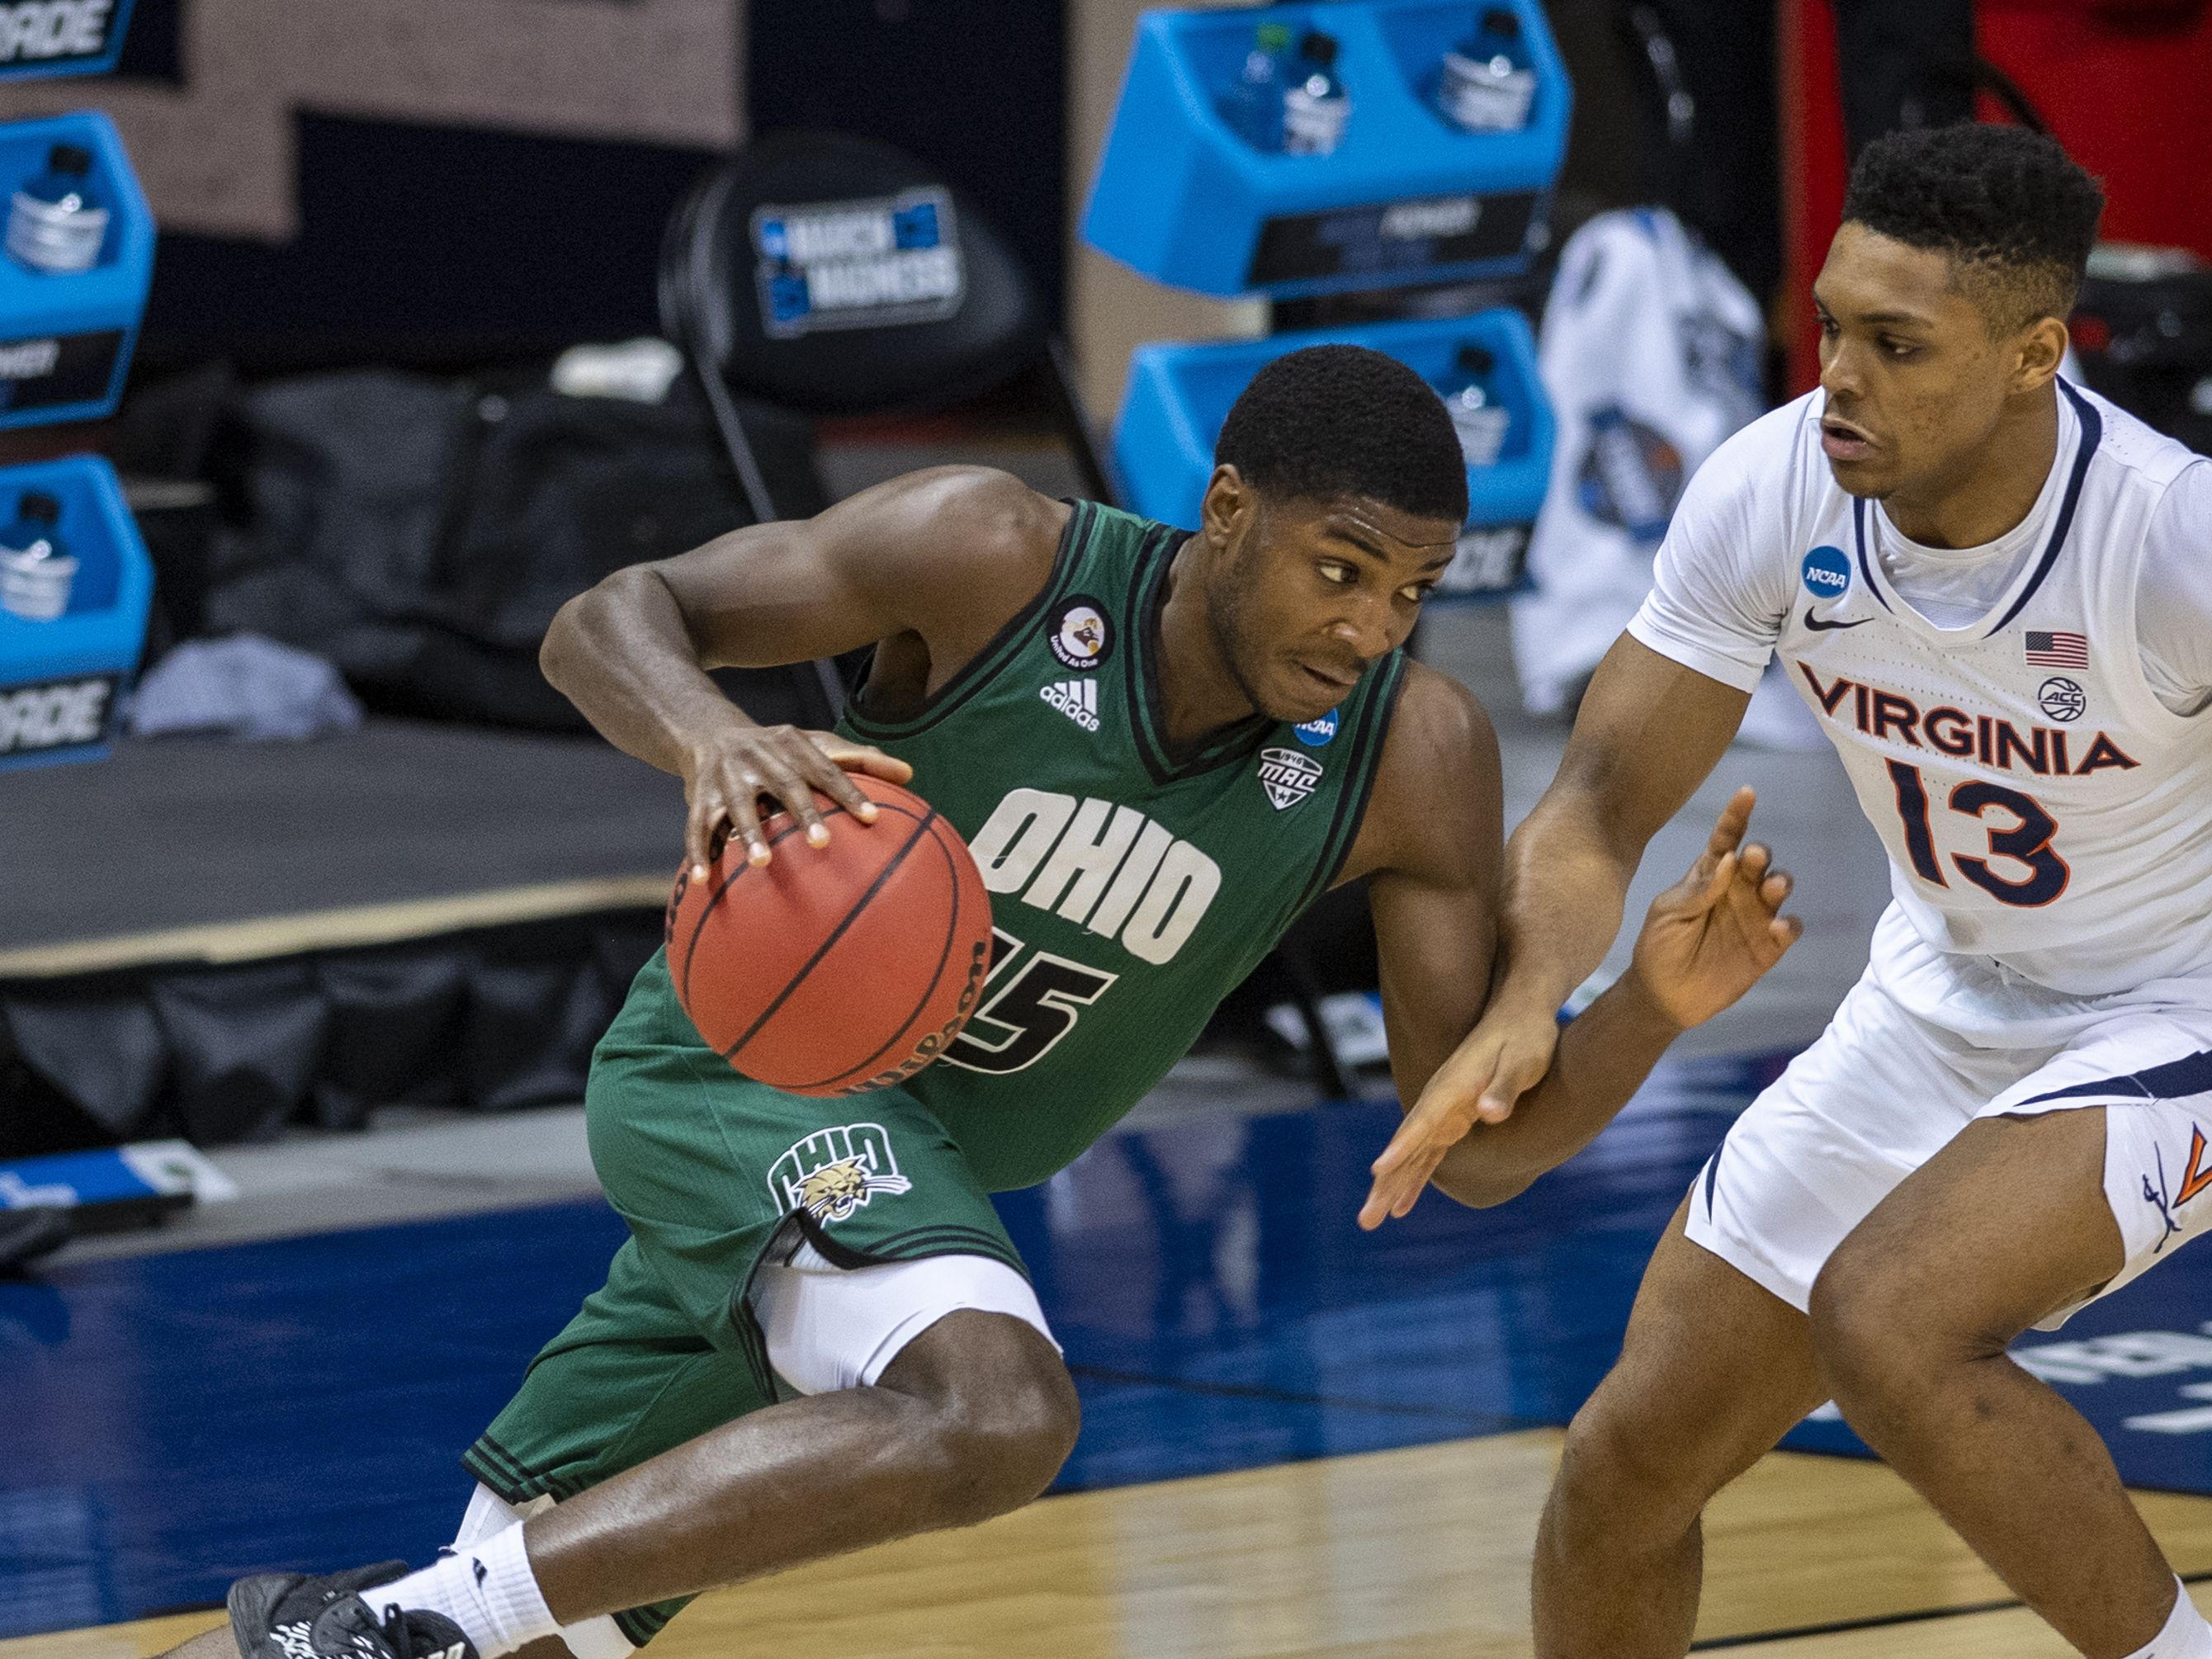 Ohio Bobcats have 3 Northeast Ohio players on team during NCAA Tournament competition